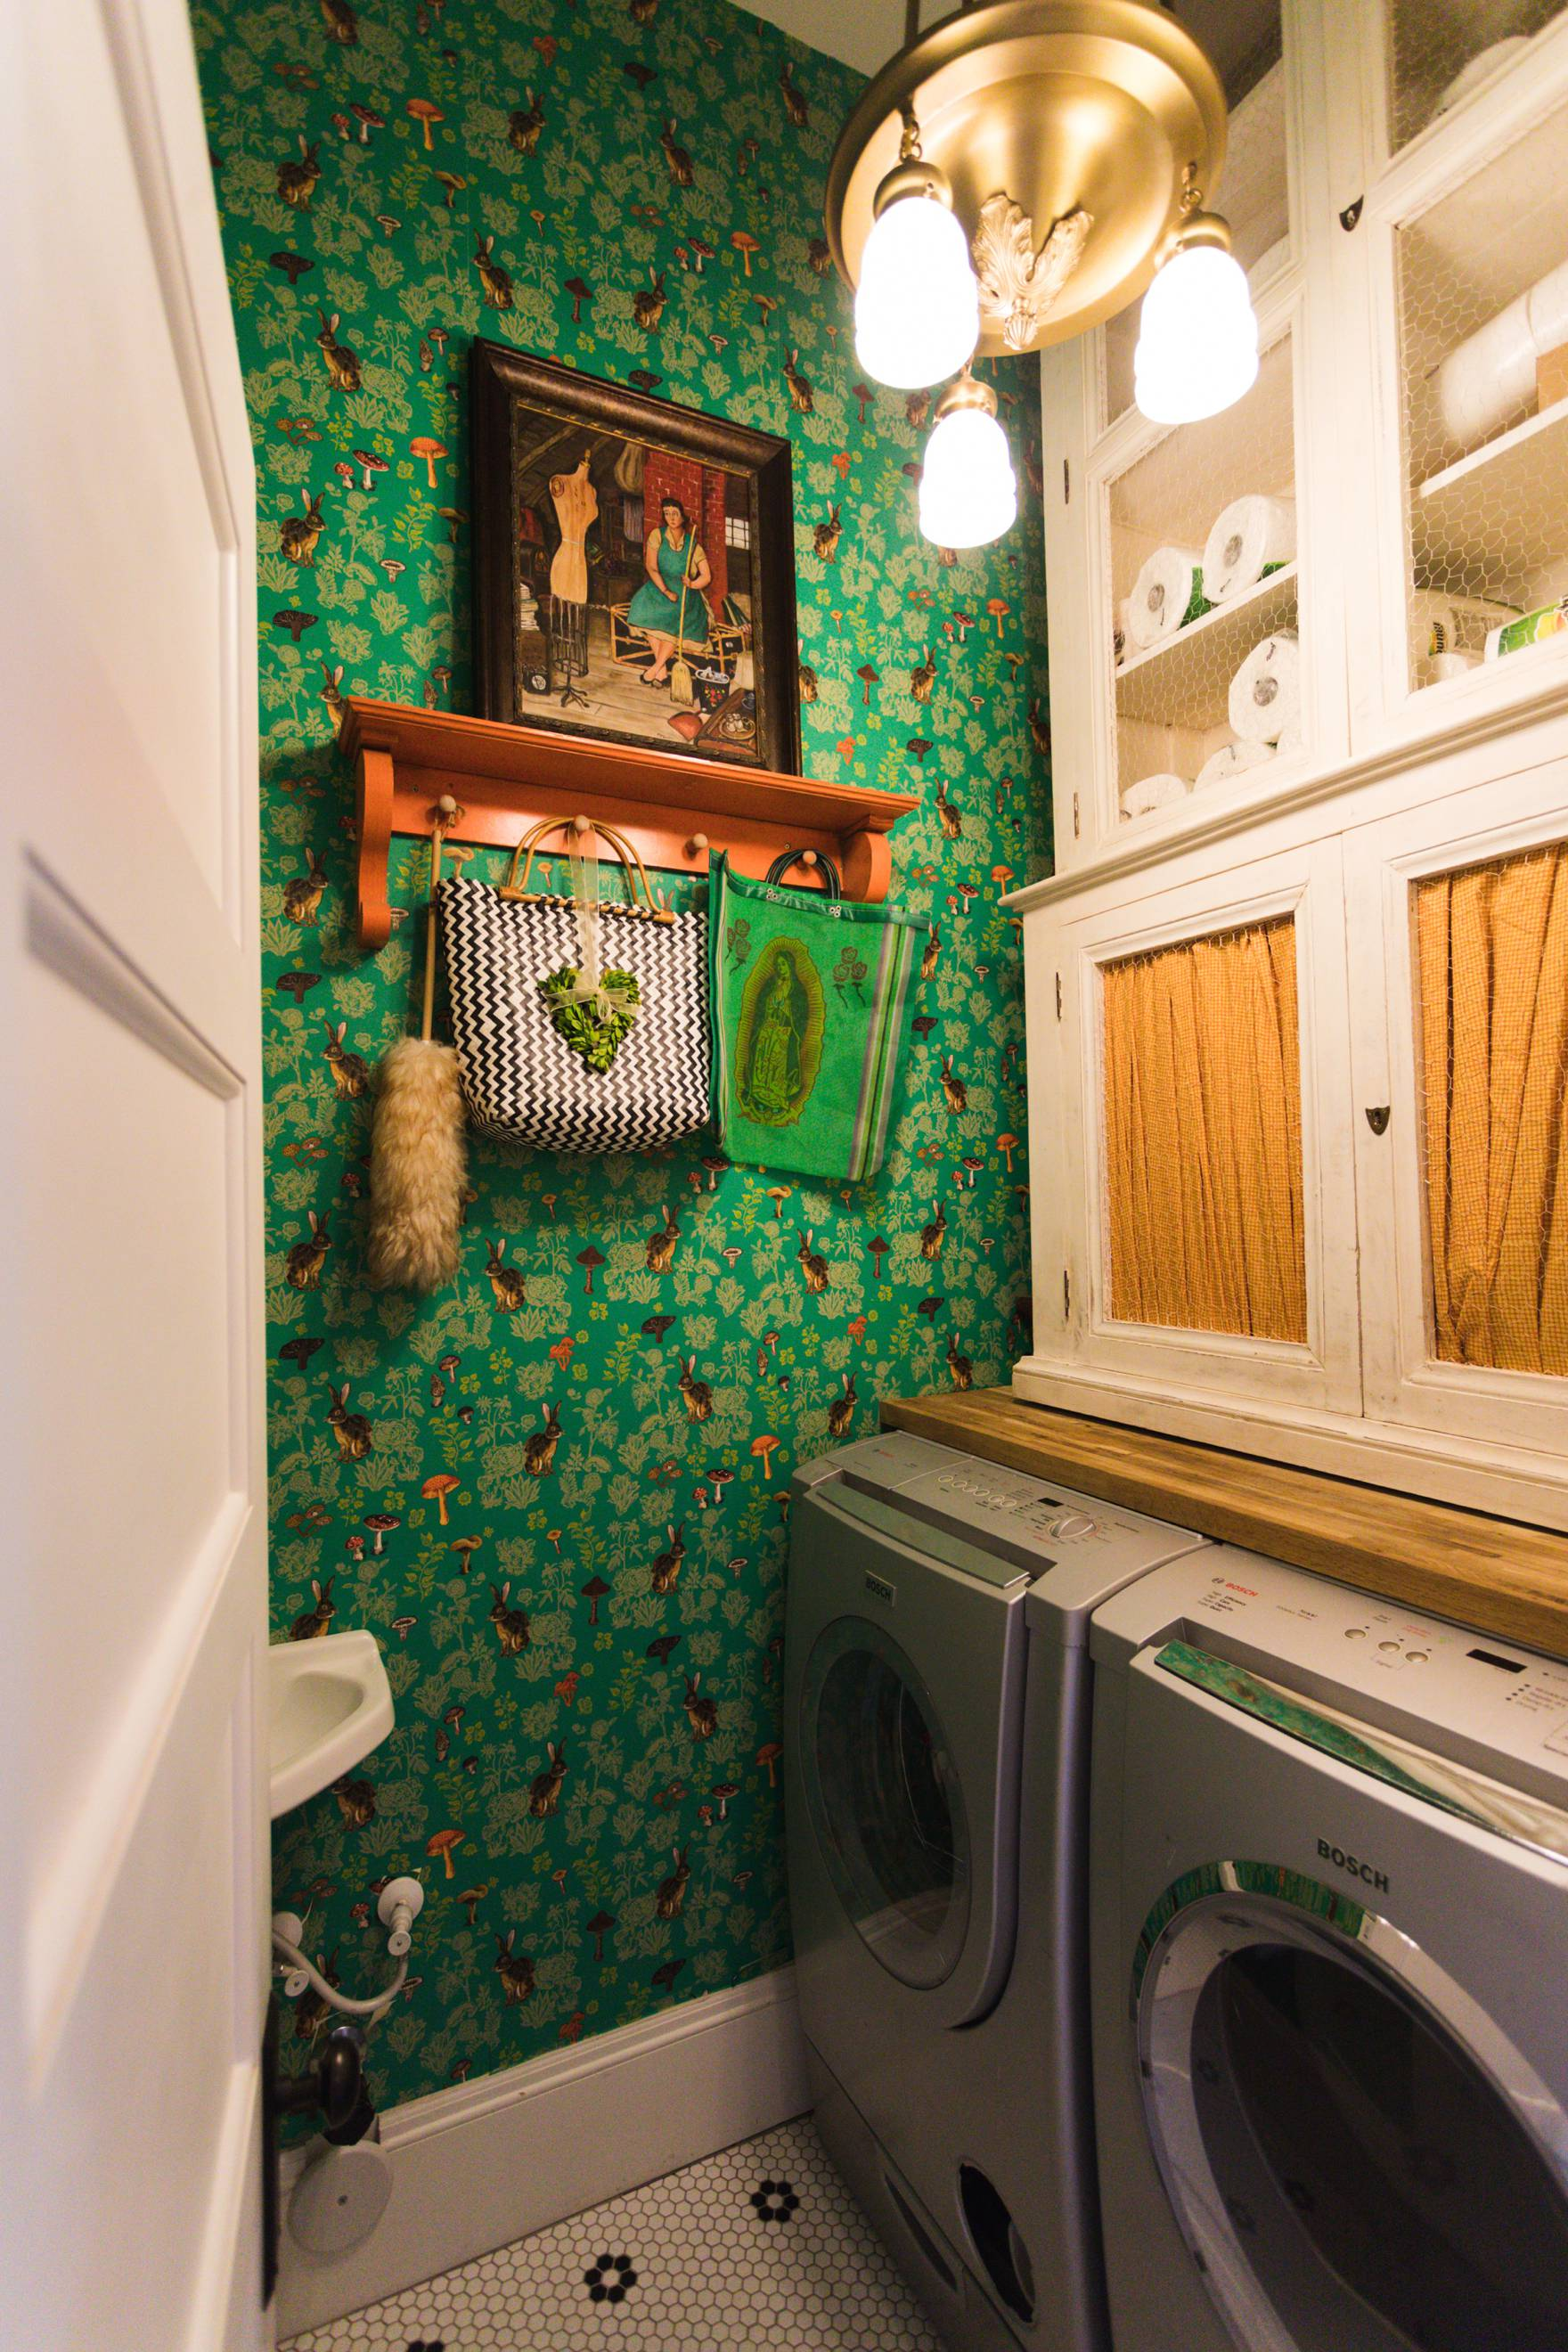 Home Tour of Boho Farm and Home in Downtown Phoenix - cottage brick style home from 1903 hallway laundry room